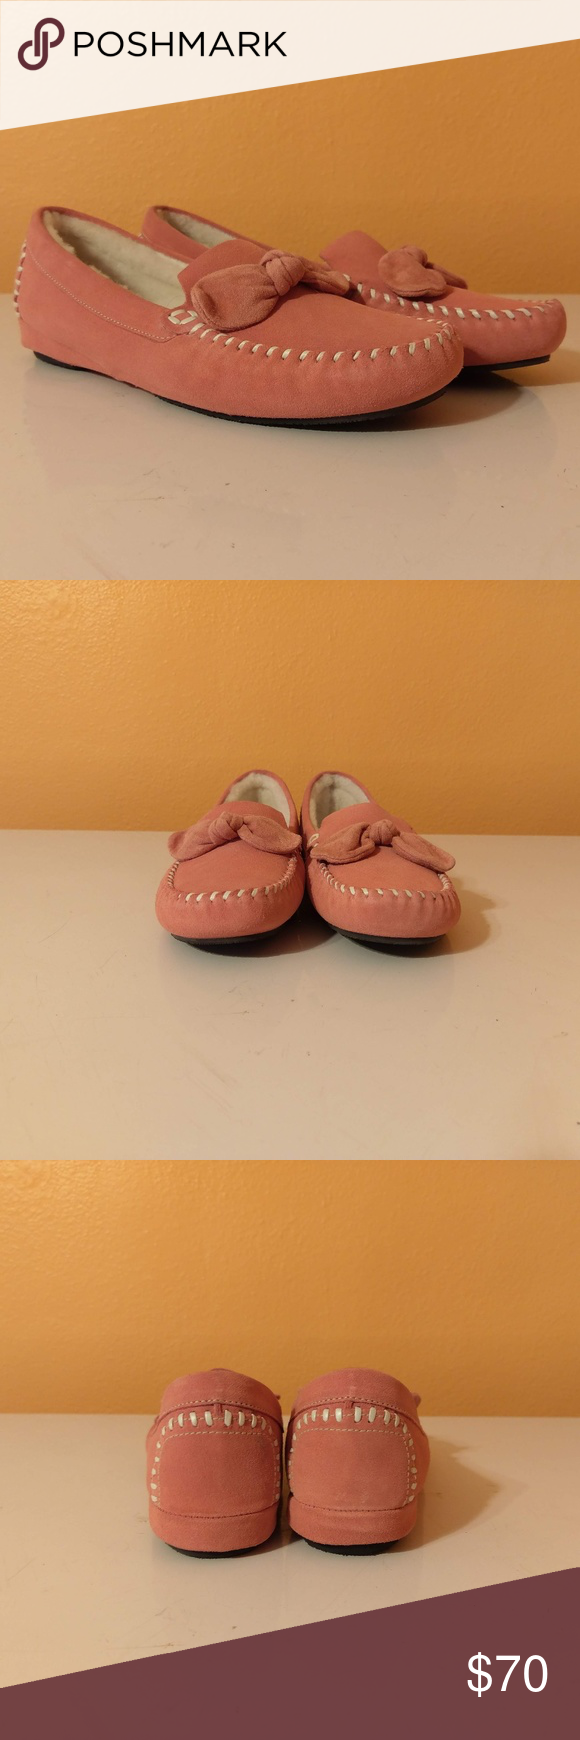 Cole Haan Flats House Slippers Moccasin